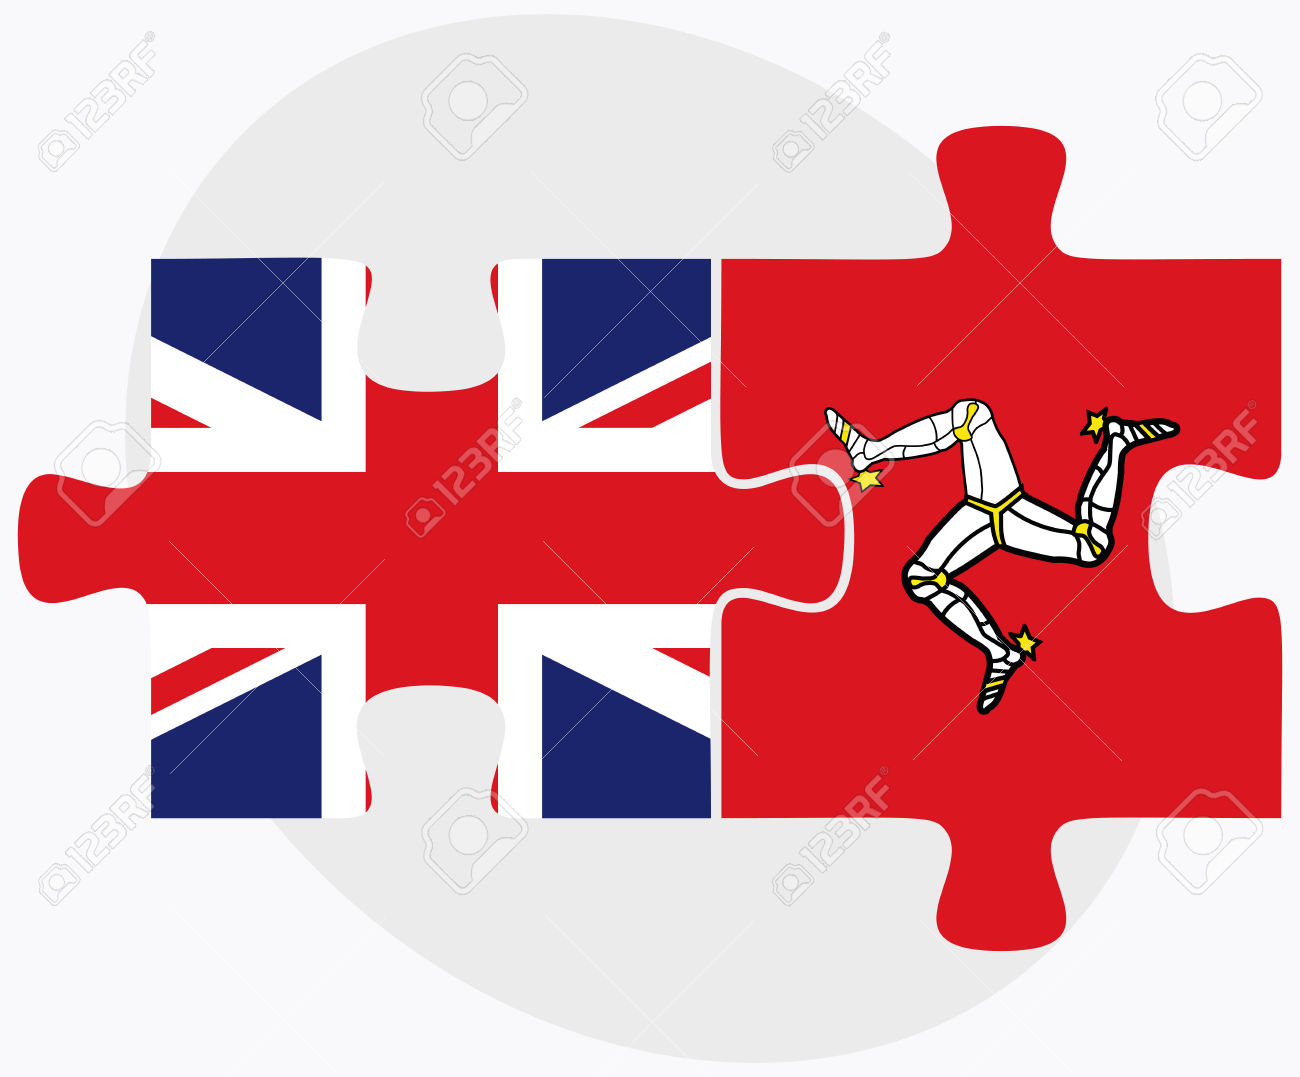 United Kingdom And Isle Of Man Flags In Puzzle Isolated On White.